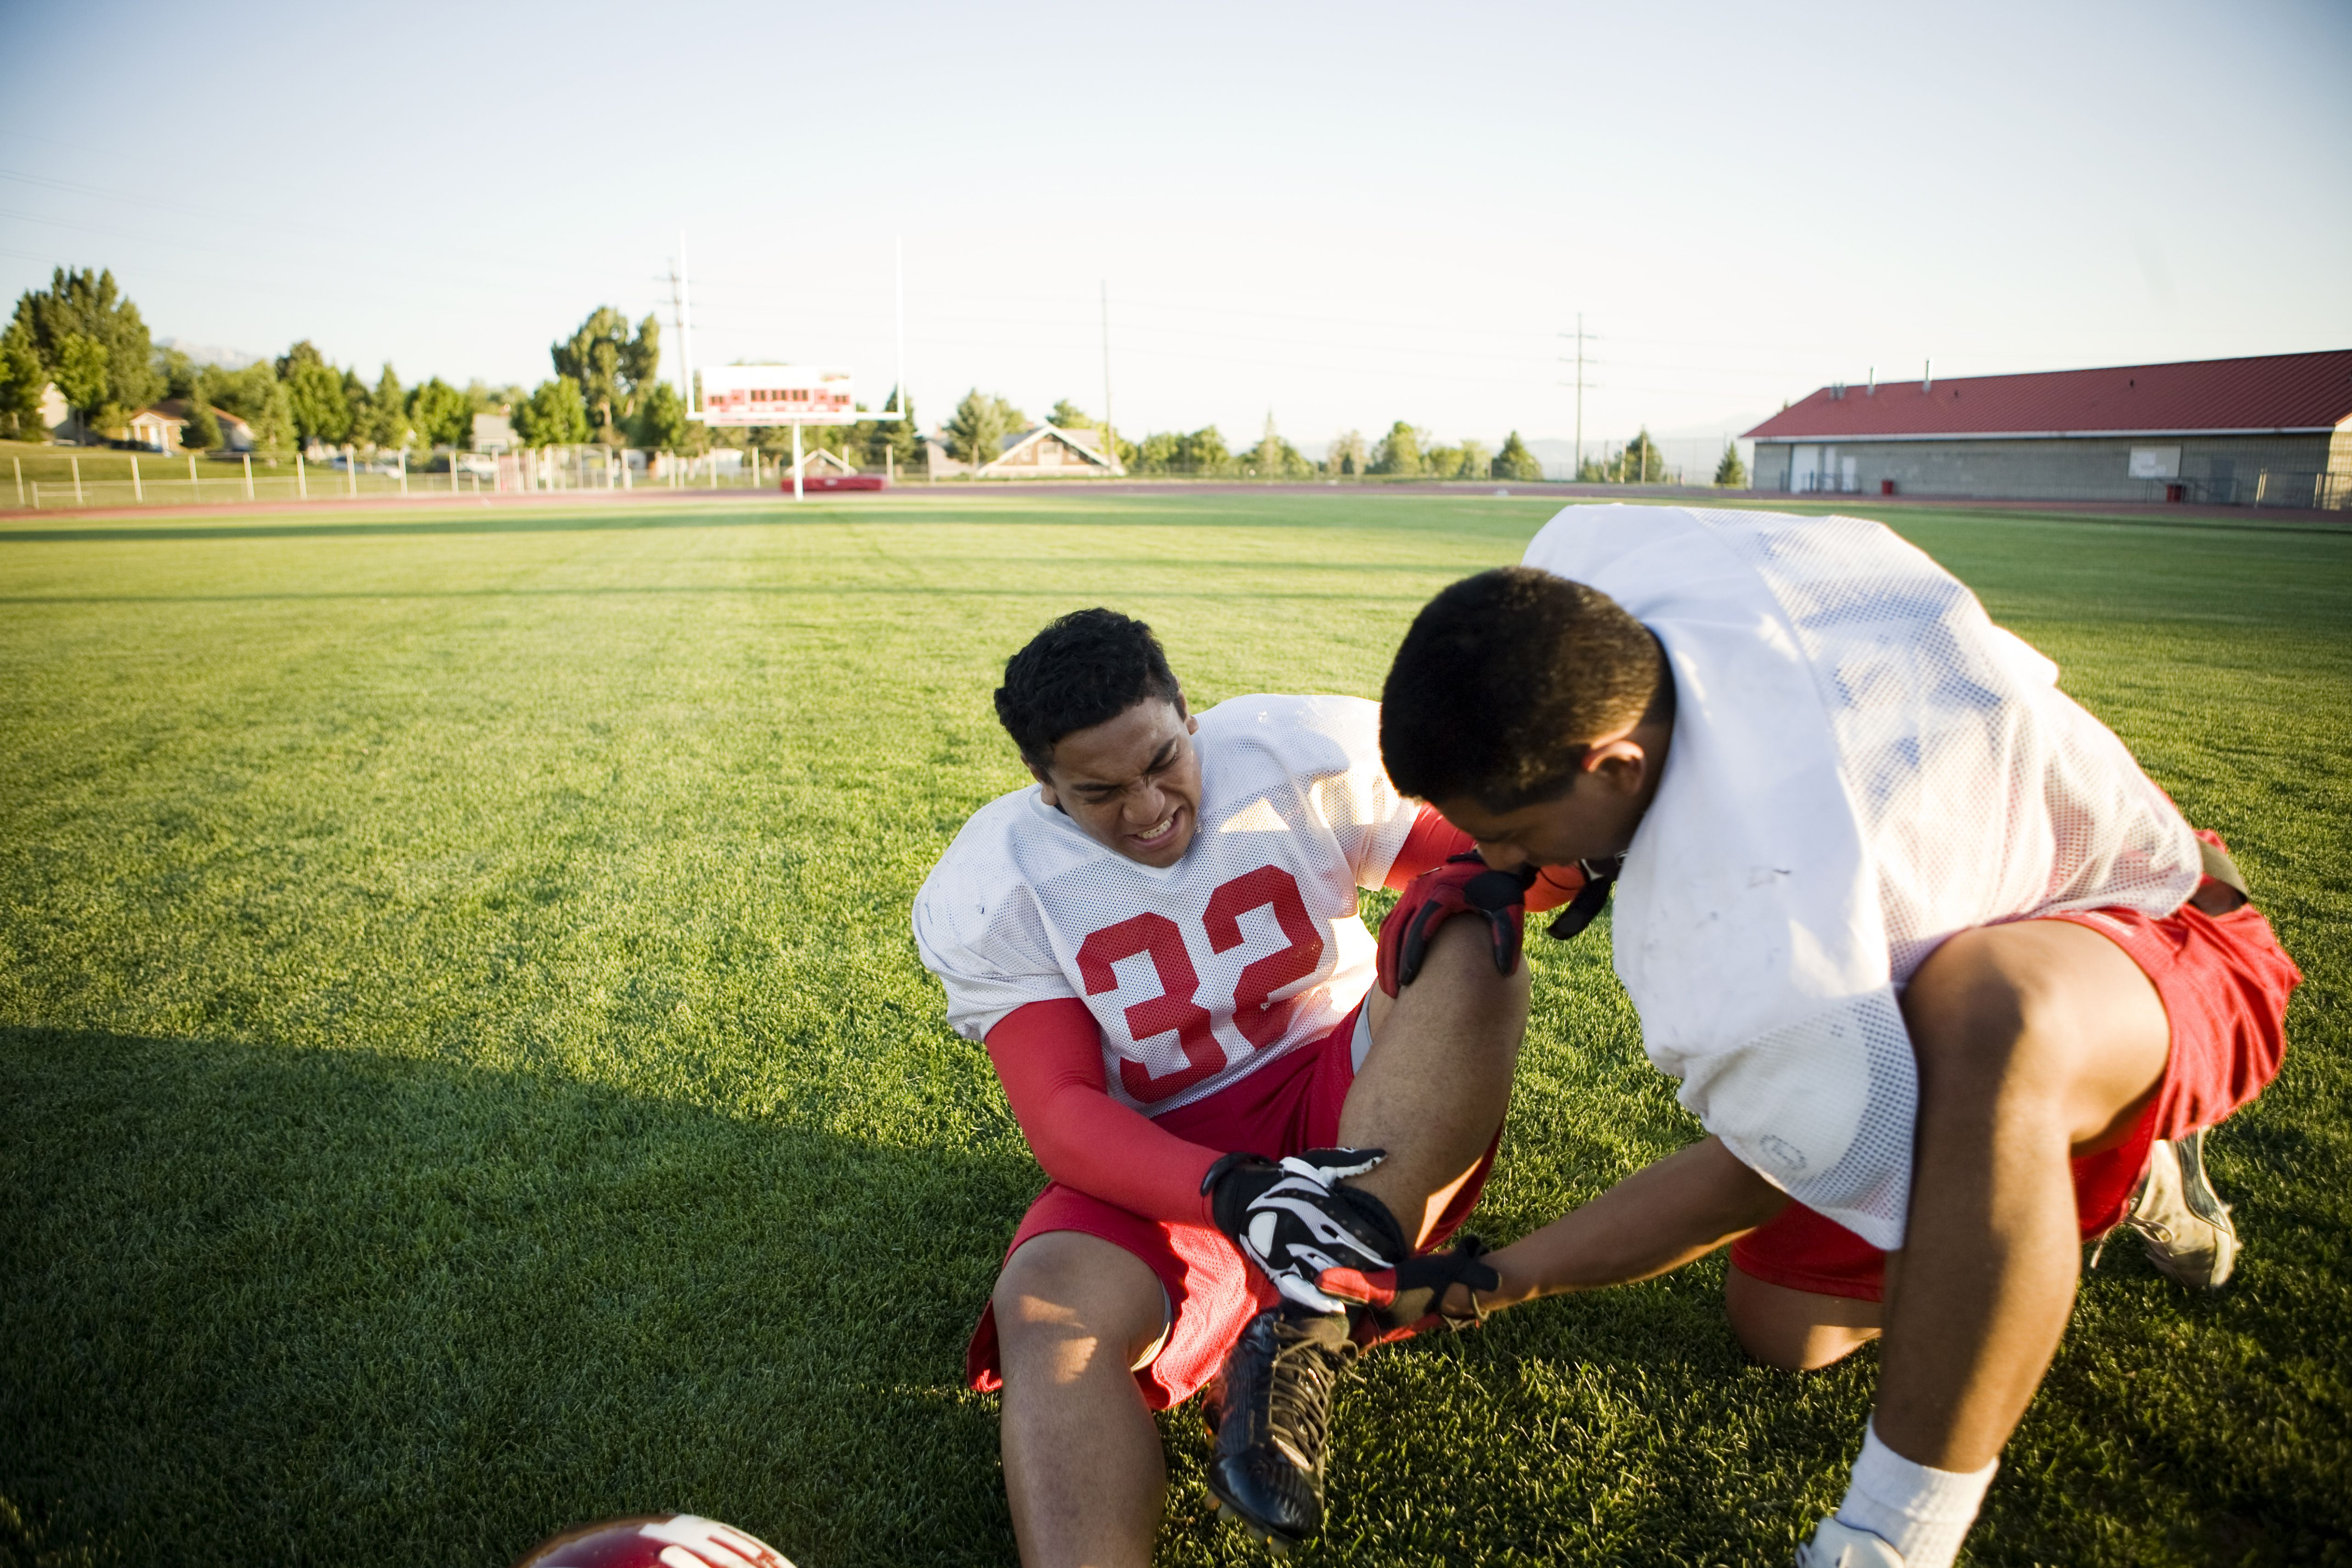 Injured football playing wincing while a teammate looks at his ankle